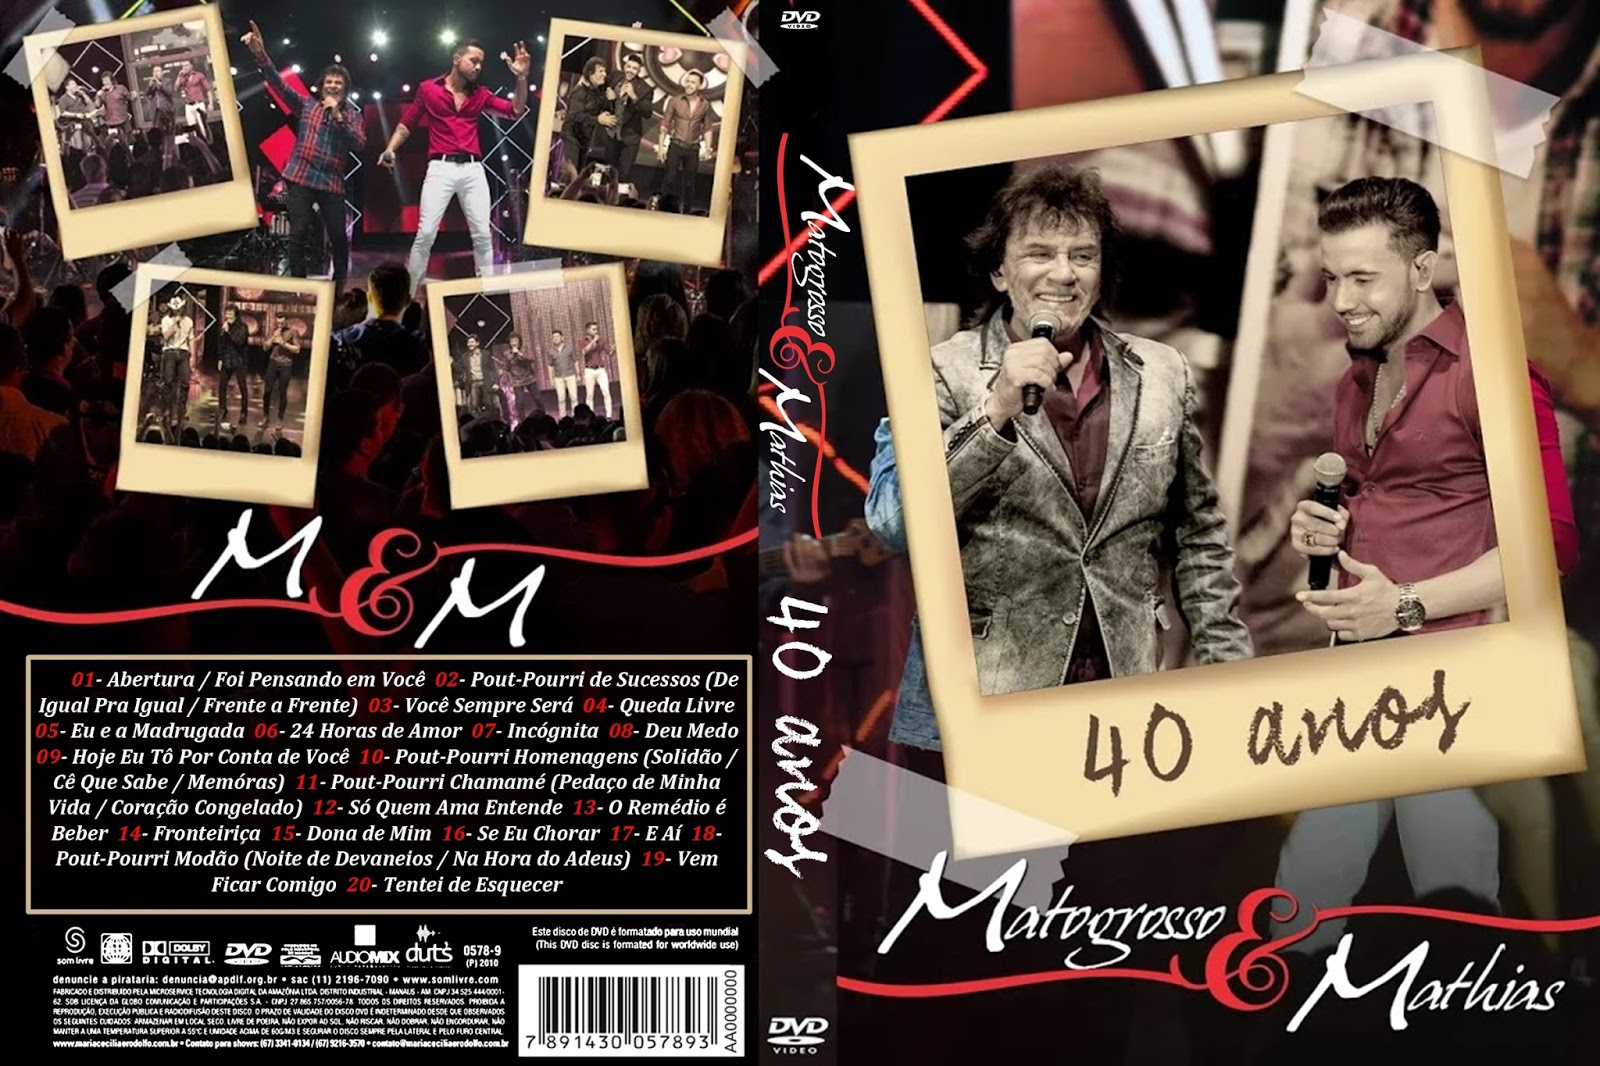 Download Matogrosso e Mathias 40 Anos DVD-R Download Matogrosso e Mathias 40 Anos DVD-R Matogrosso 2Be 2BMathias 2B 25E2 2580 2593 2B40 2BAnos 2B 25282016 2529 2BDVD R 2BOficial 2BXANDAODOWNLOAD